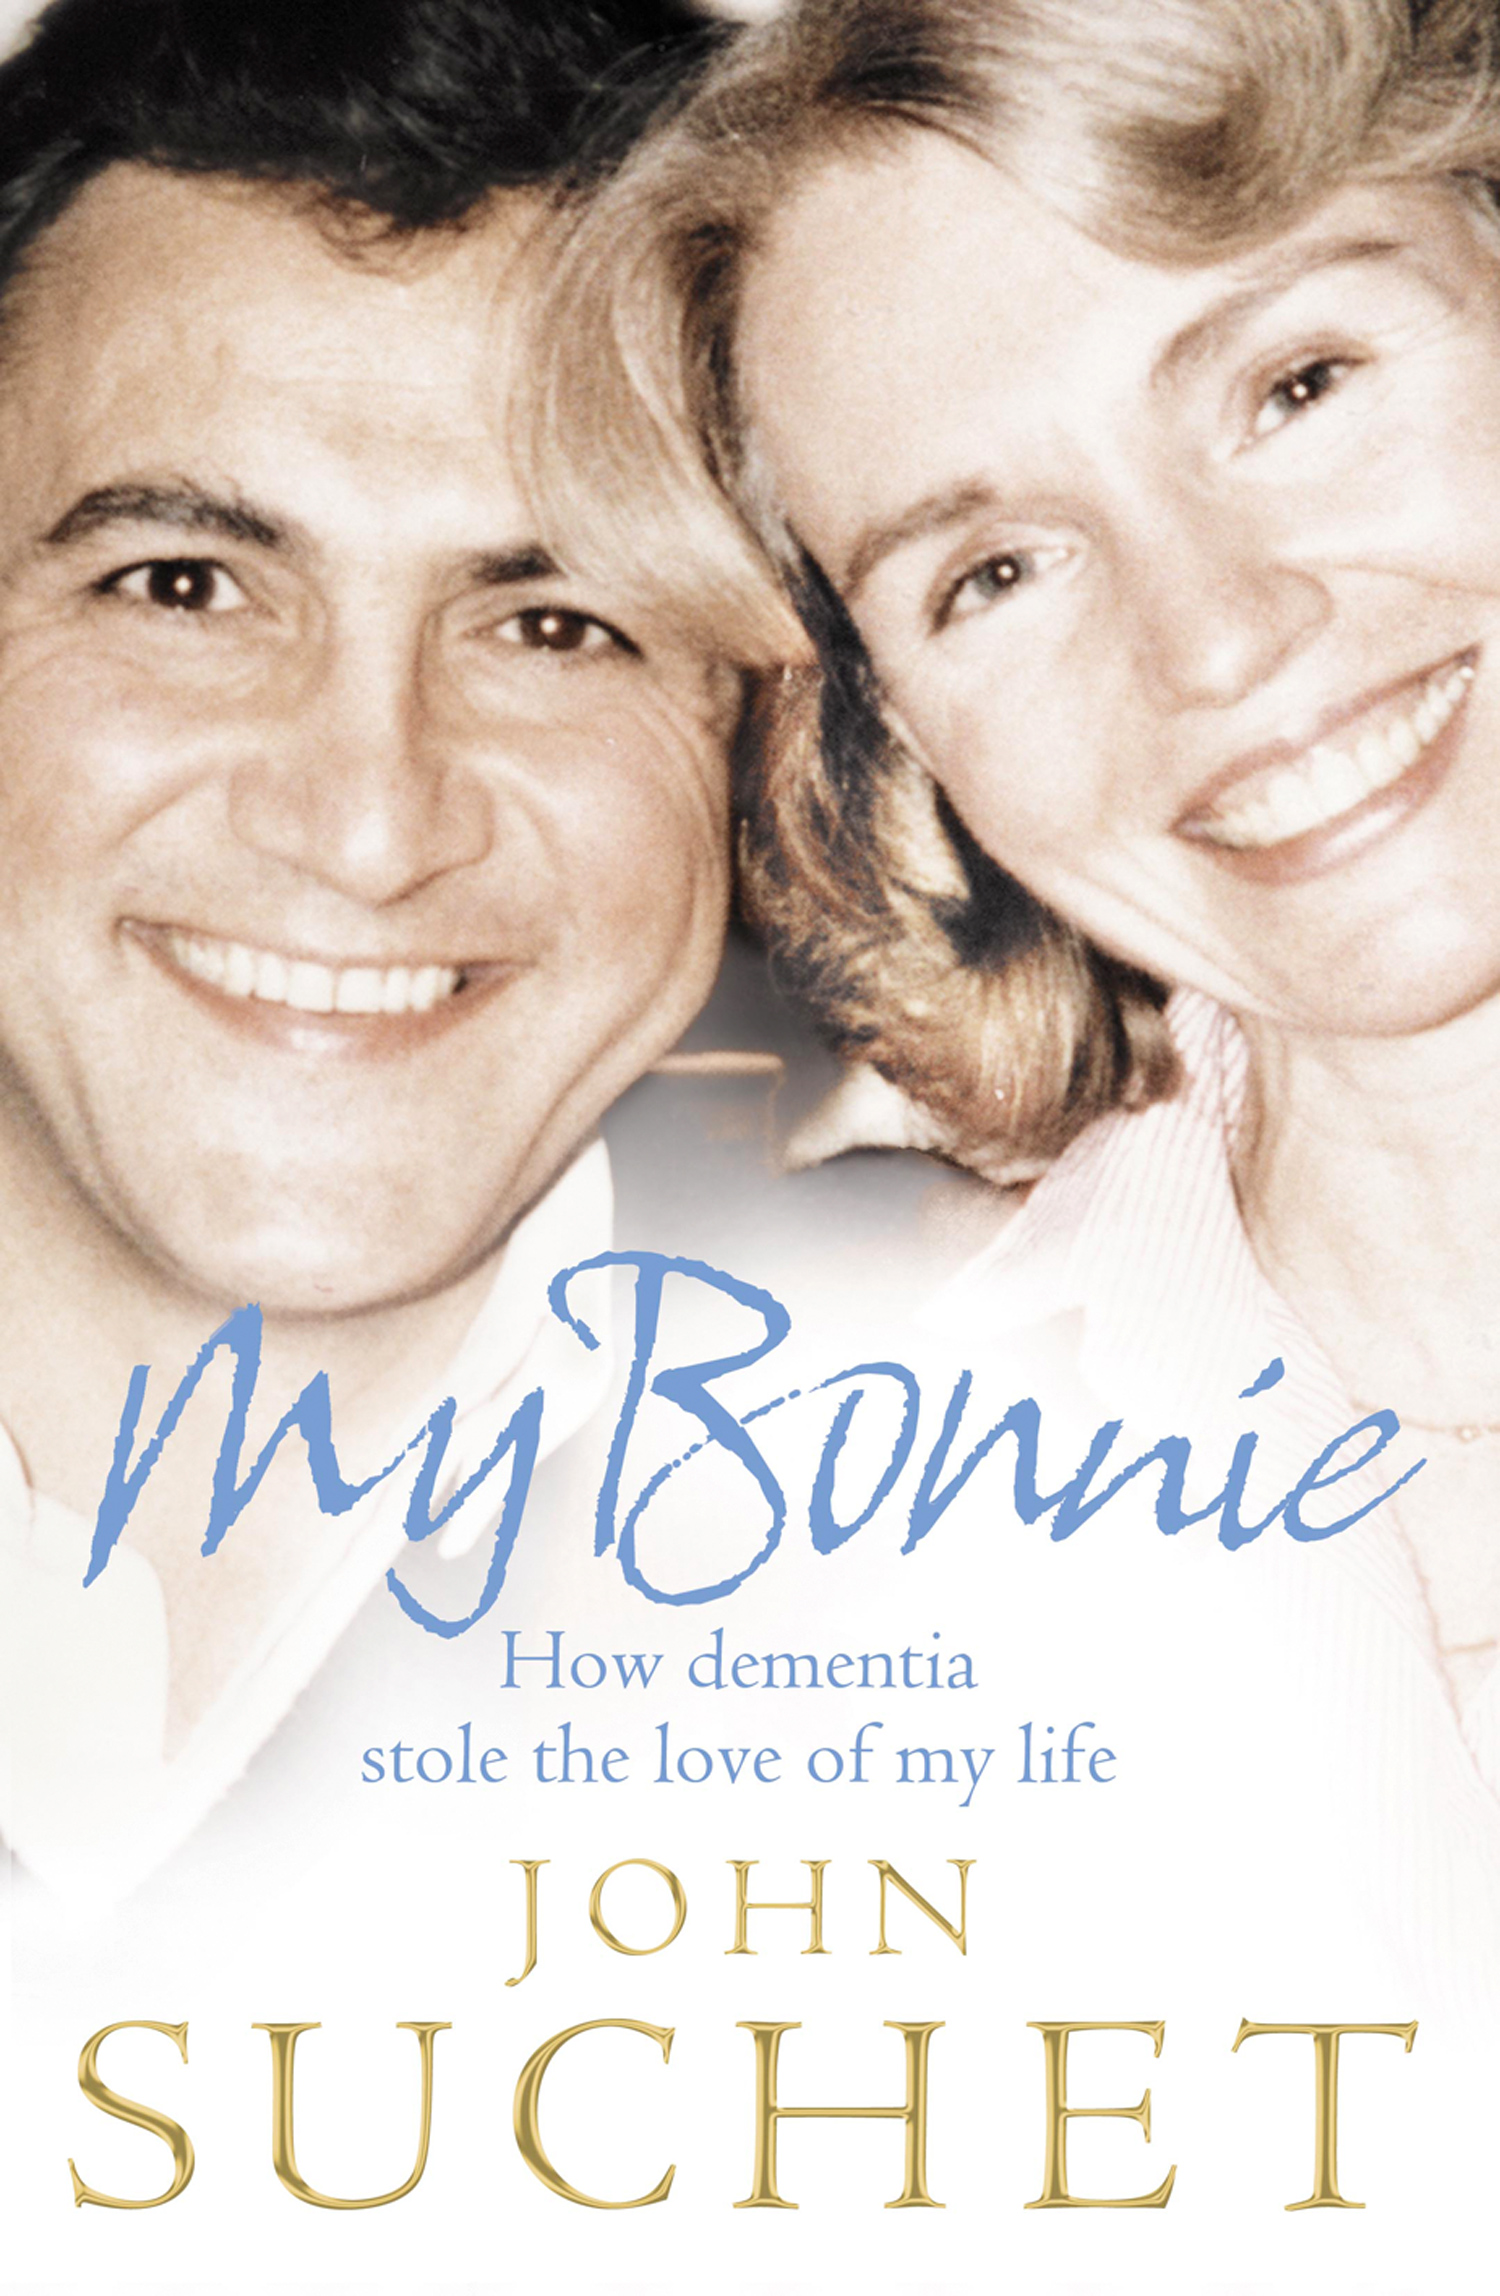 My Bonnie: How dementia stole the love of my life By: John Suchet